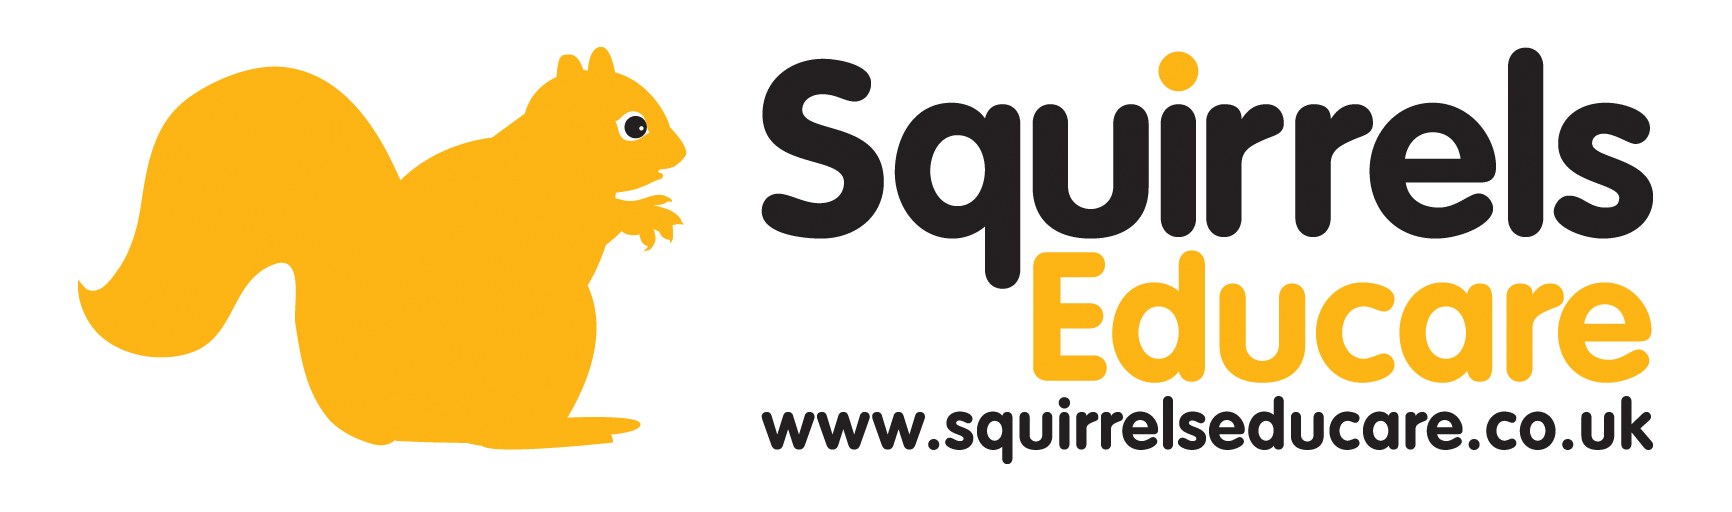 Squirrels Educare Logo